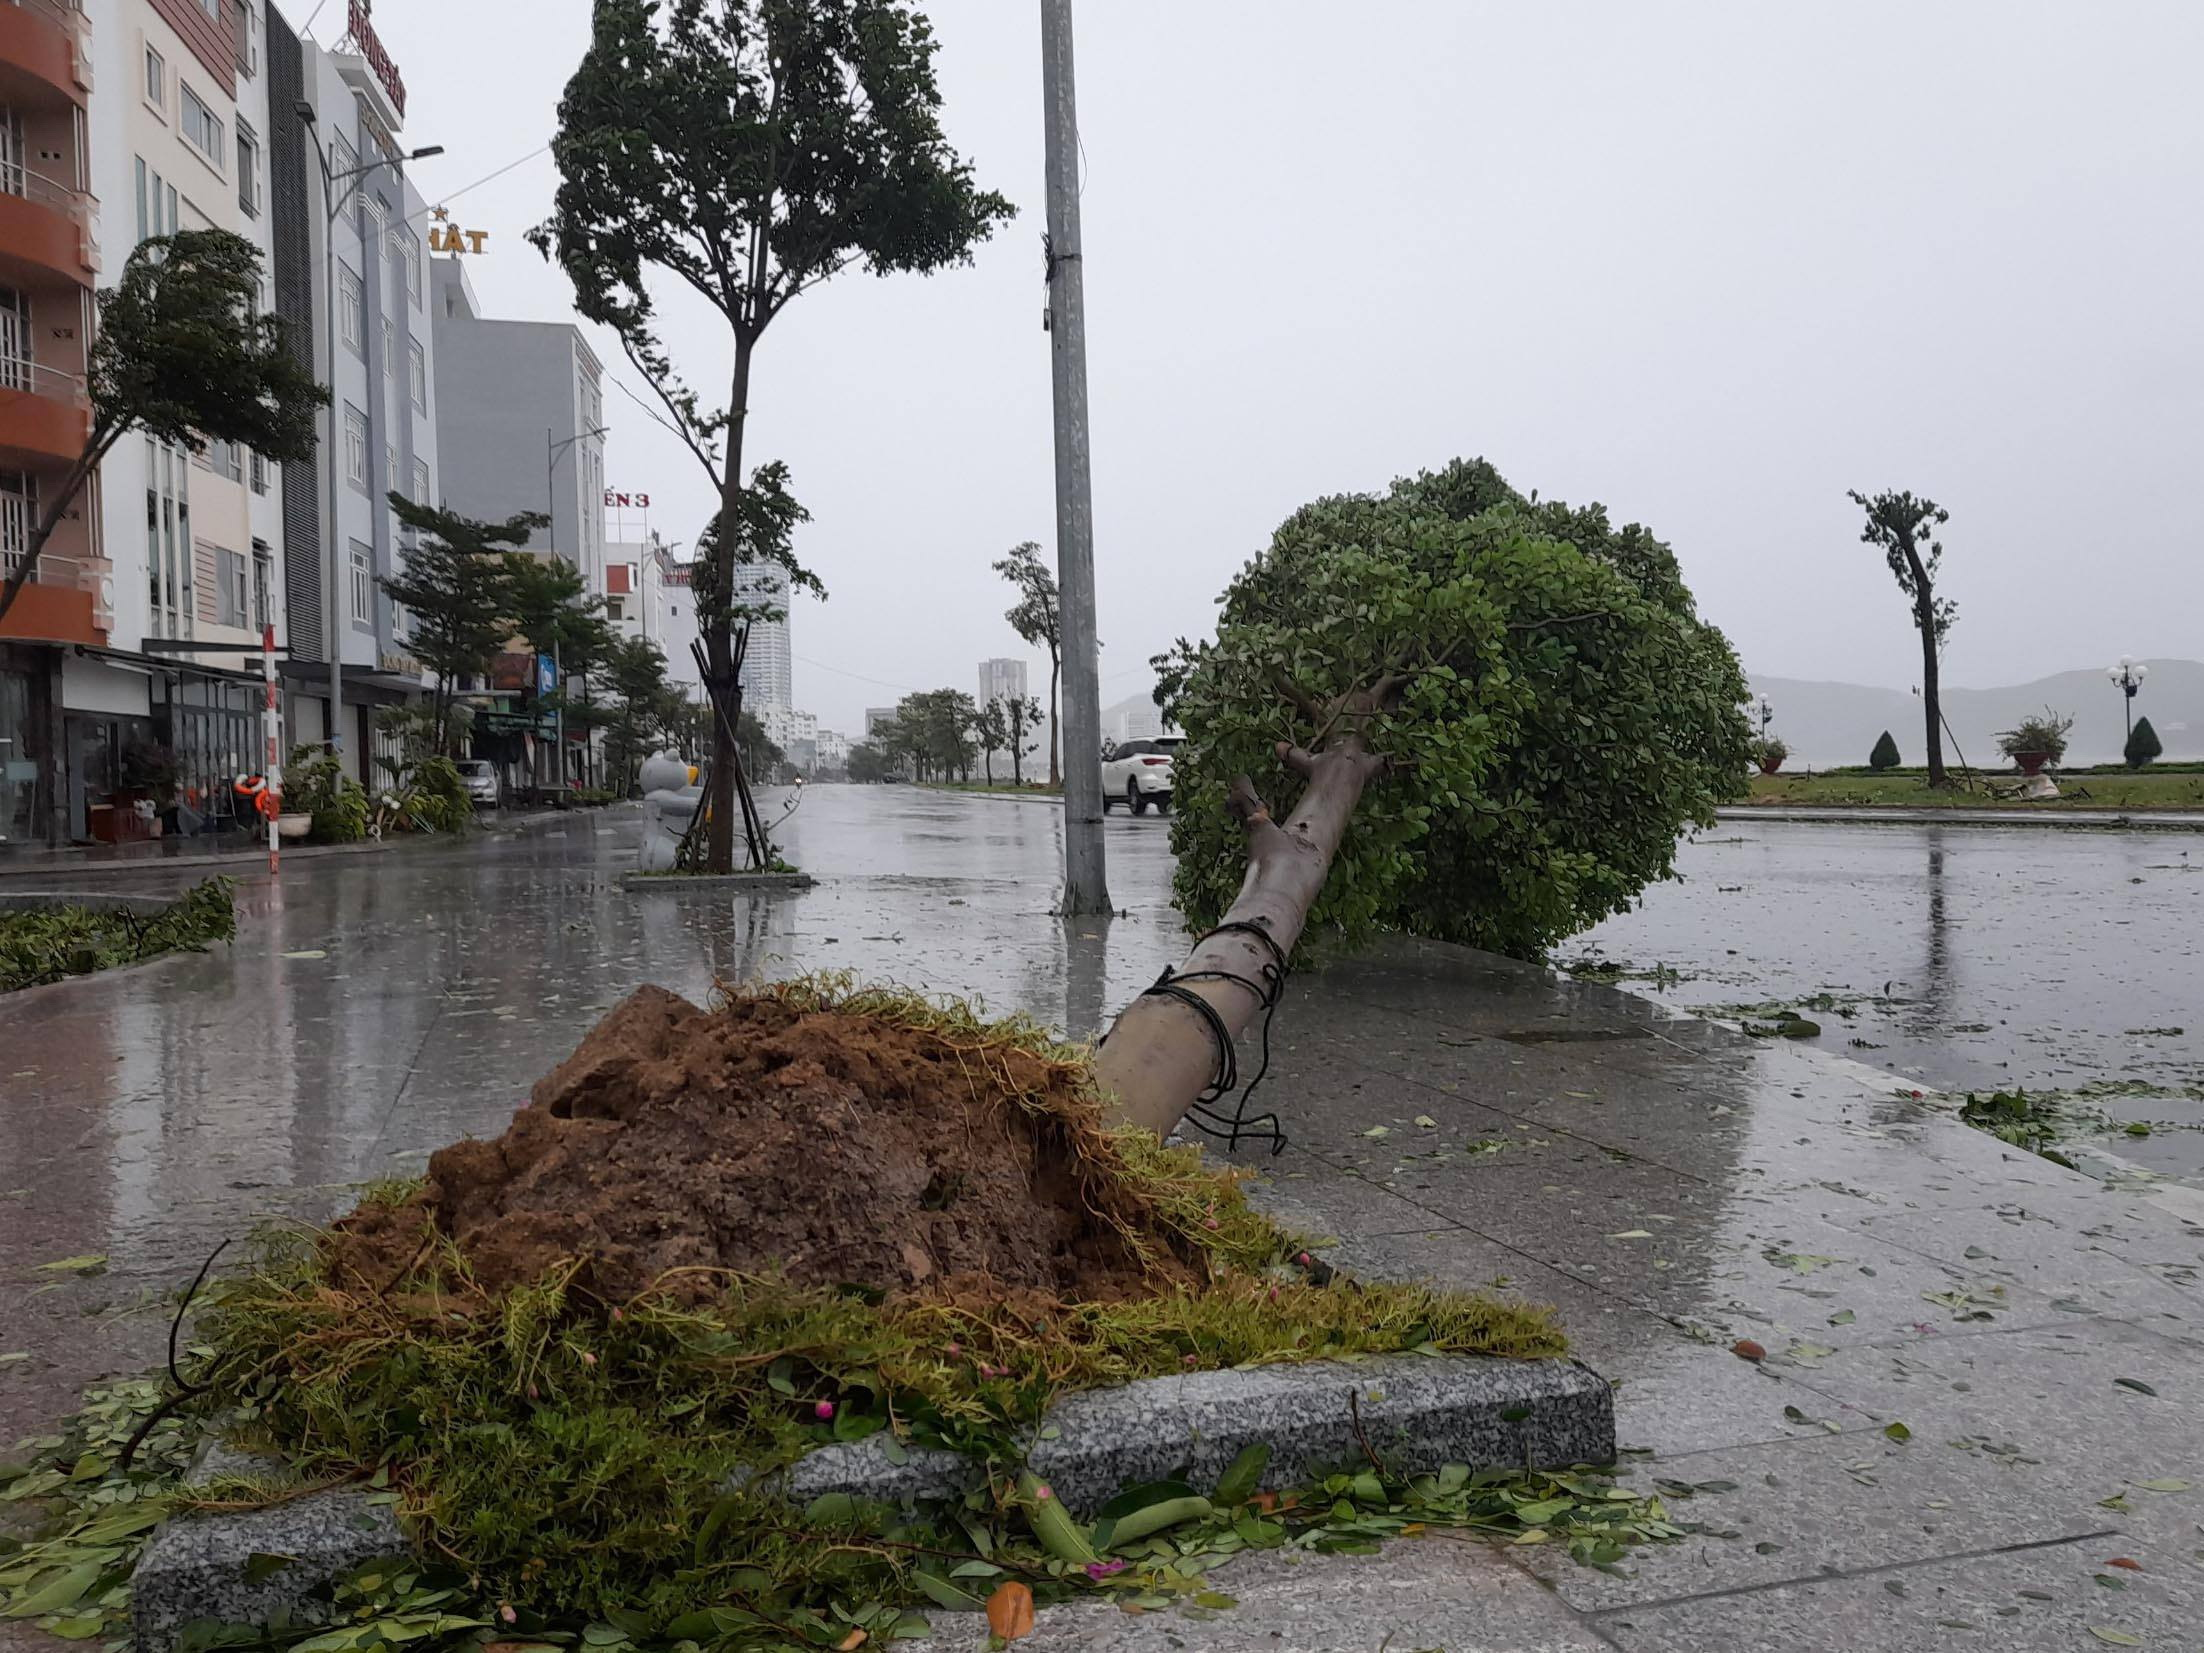 Storm number 9 hit the mainland, Kwang Nam had heavy rain with strong winds - Figure 7